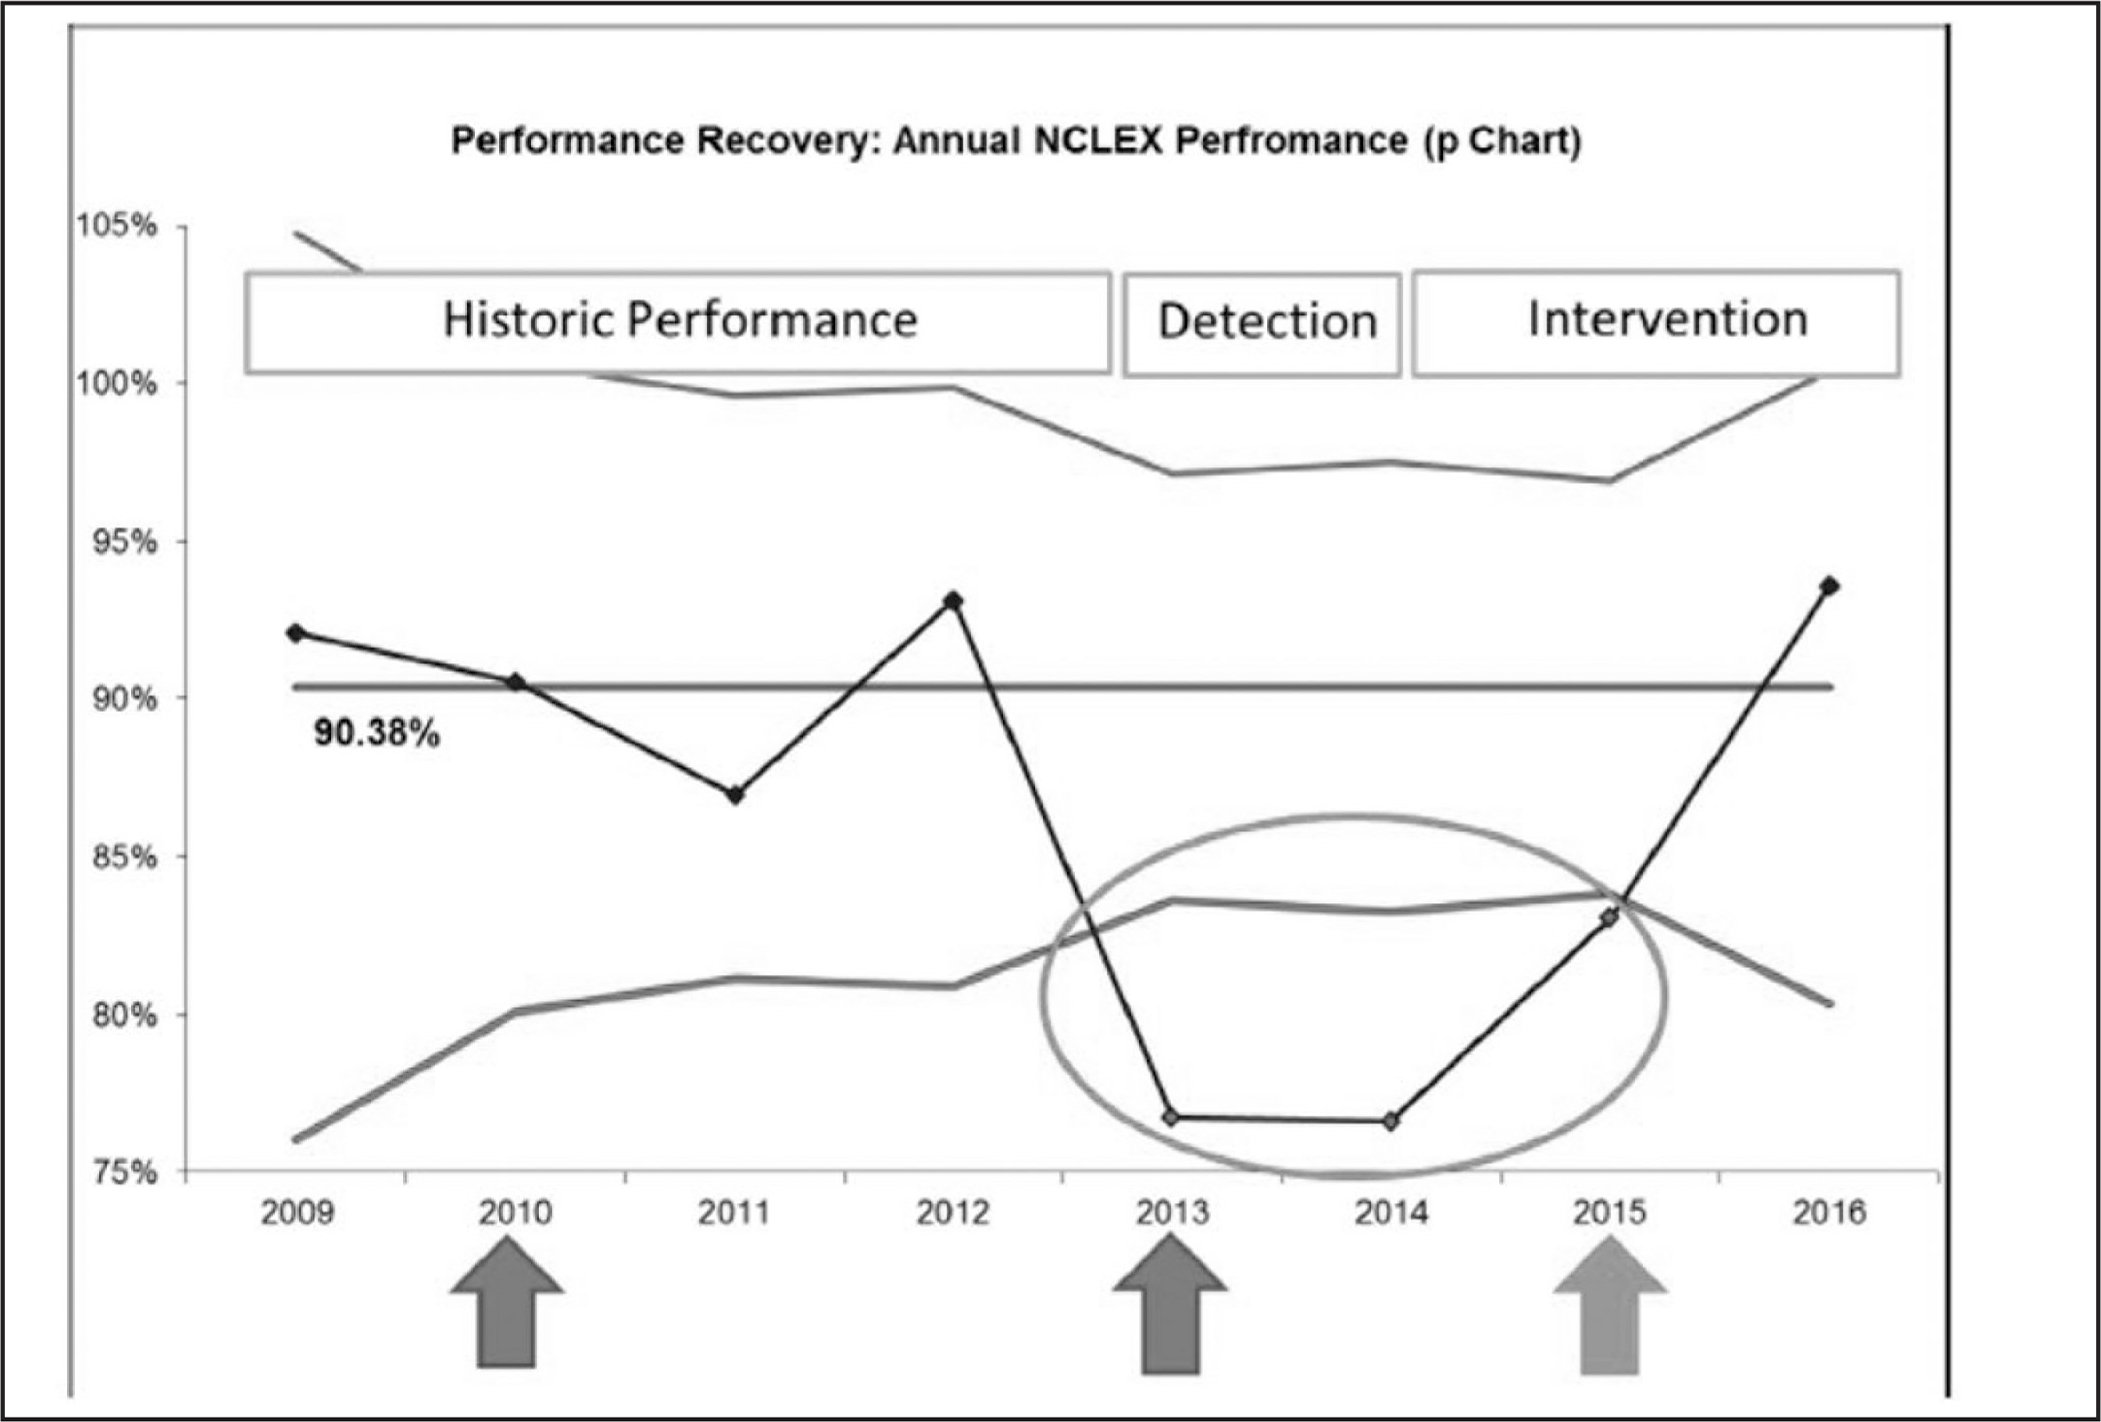 Annual NCLEX-RN performance. Statistical process control proportions chart for first-attempt pass rate by year of test administration. The center line denotes overall mean proportion passing the NCLEX-RN based on all values from 2009 to 2016. Diamonds and the lines connecting them denote mean NCLEX-RN pass rate at each individual NCLEX administration time point (each quarter). The uppermost and lowermost solid lines denote three sigma deviation upper and lower control limits, respectively (approximately 3 standard deviations above and below the mean). The points circled denote special cause signals, indicating significant deviations from the overall mean (p < .01). Arrows (L to R): The first two arrows denote changes in NCLEX-RN format or administration. The final arrow denotes Plan-Do-Study-Act (PDSA) cycles 1 and 2 (both conducted in 2015). The text boxes at the top of the figure describe the overall time line coinciding with the observed data trends.